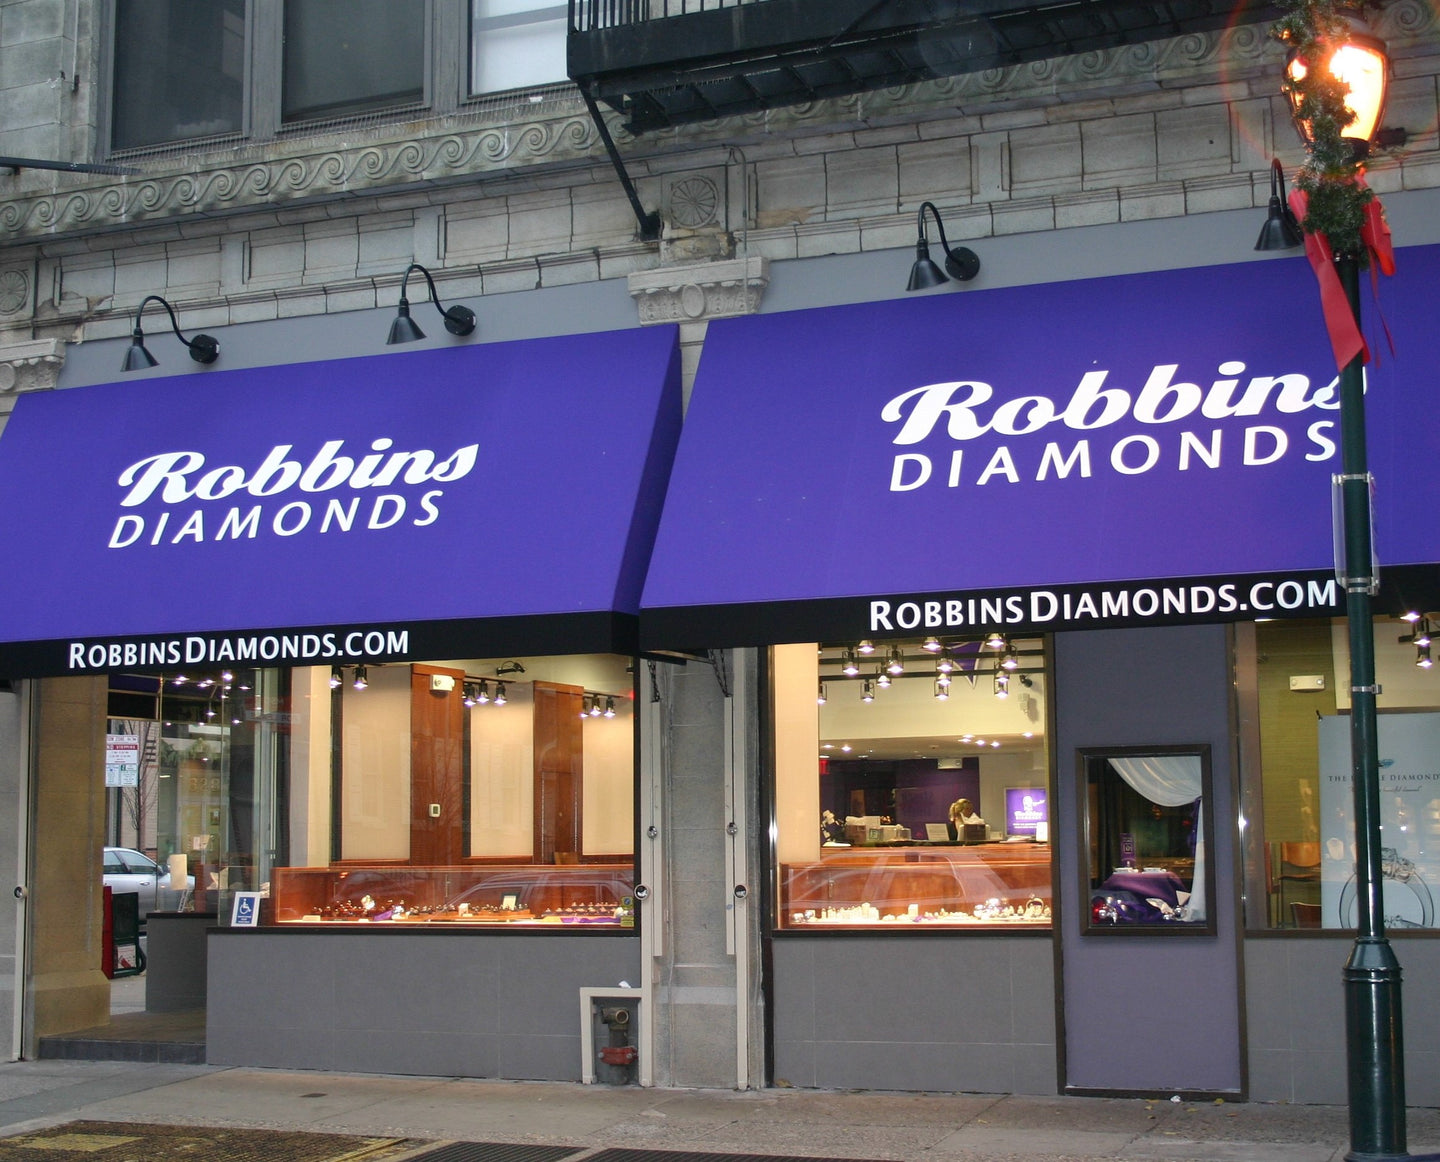 Robbins Diamonds Philadelphia PA